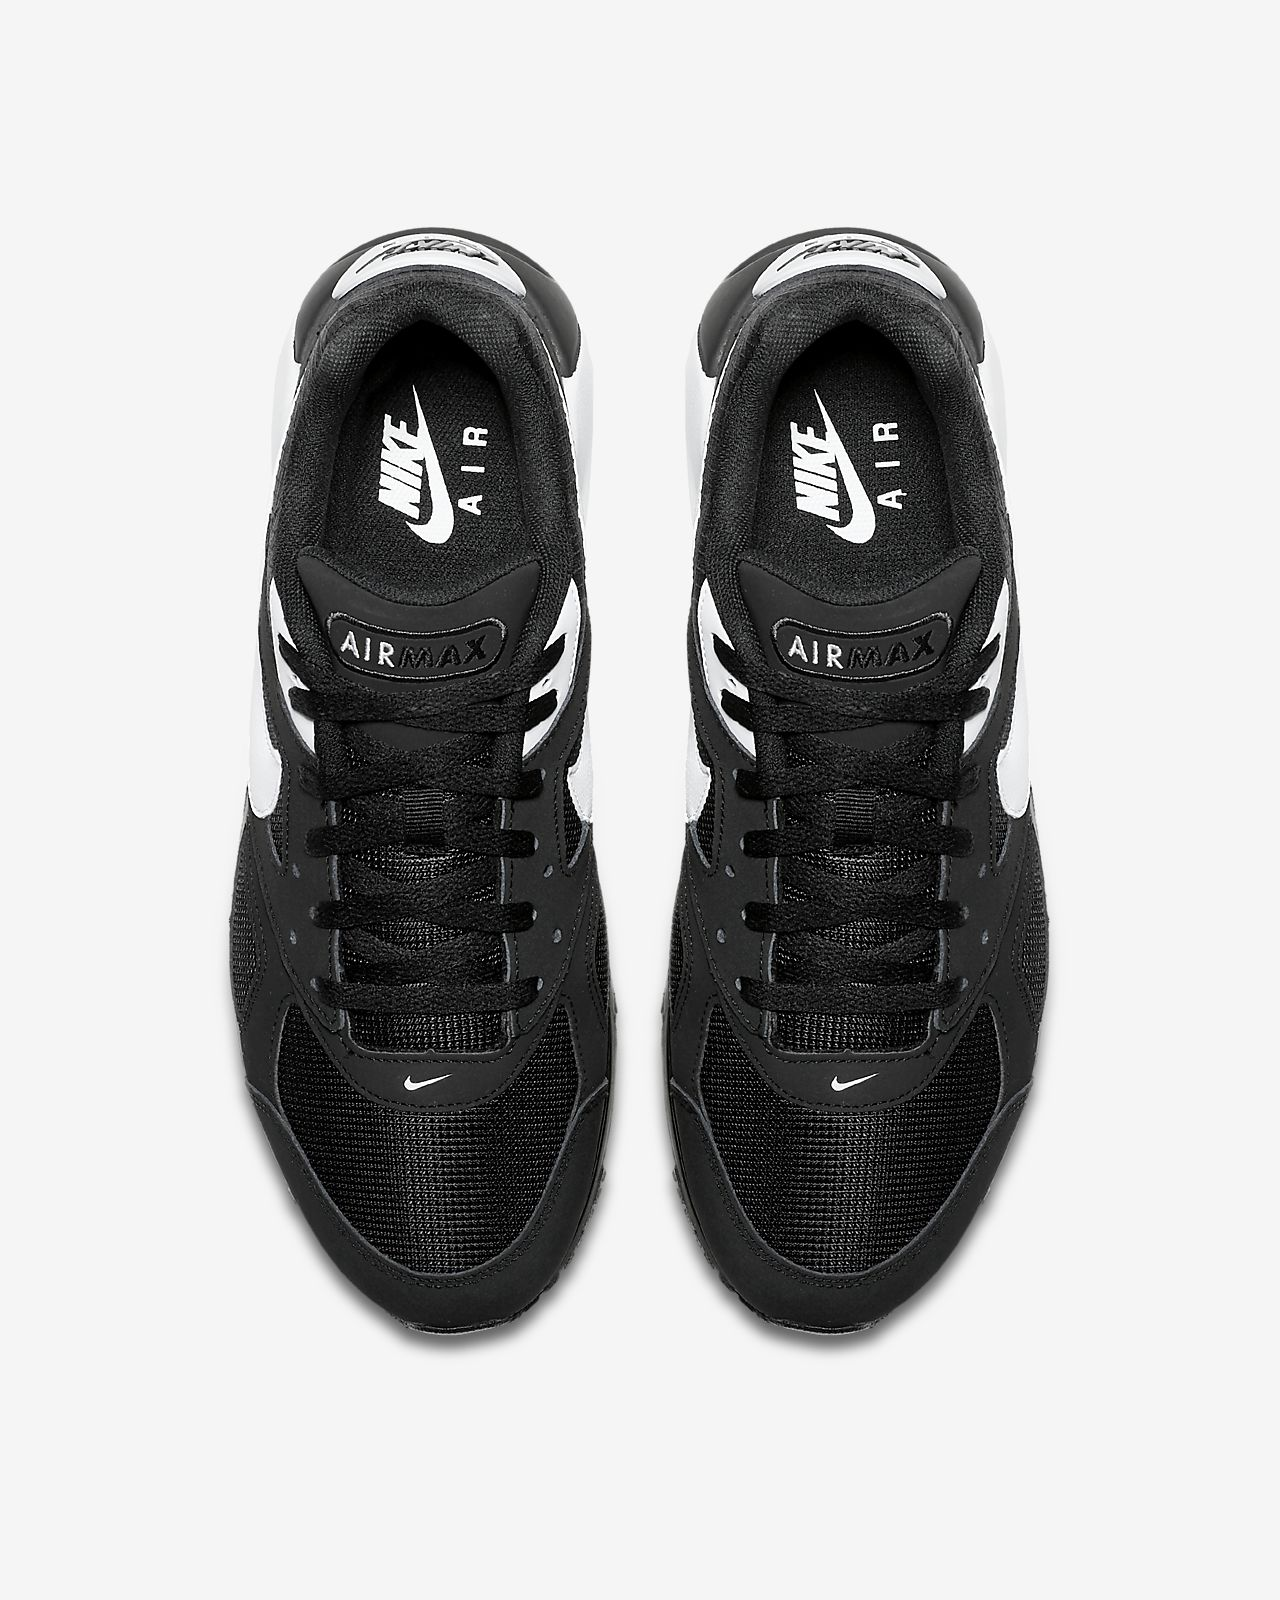 Nike air max command leather + FREE SHIPPING |